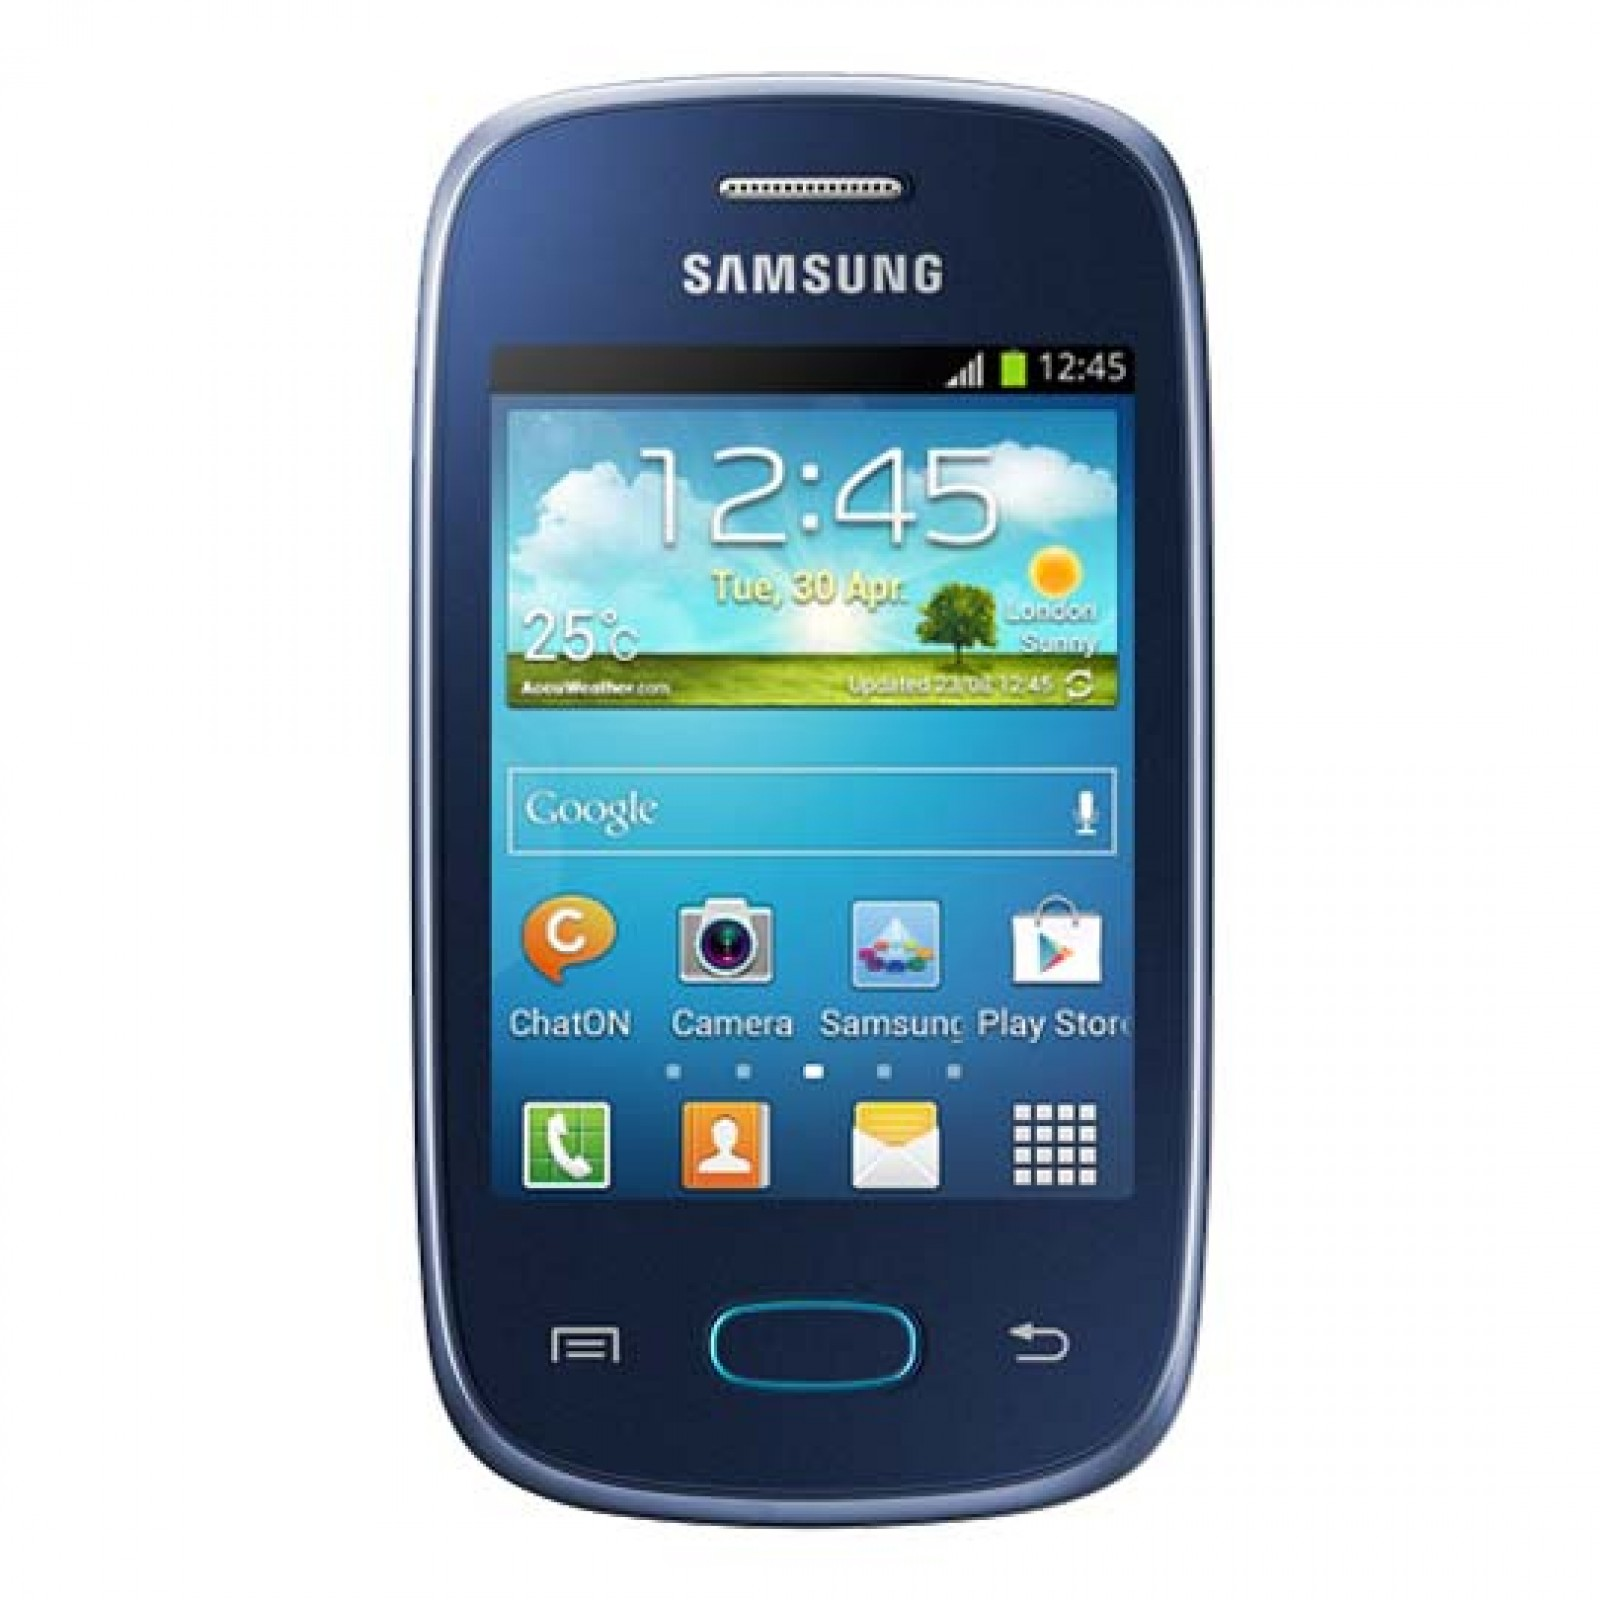 Samsung GT-S5310B Device Specifications